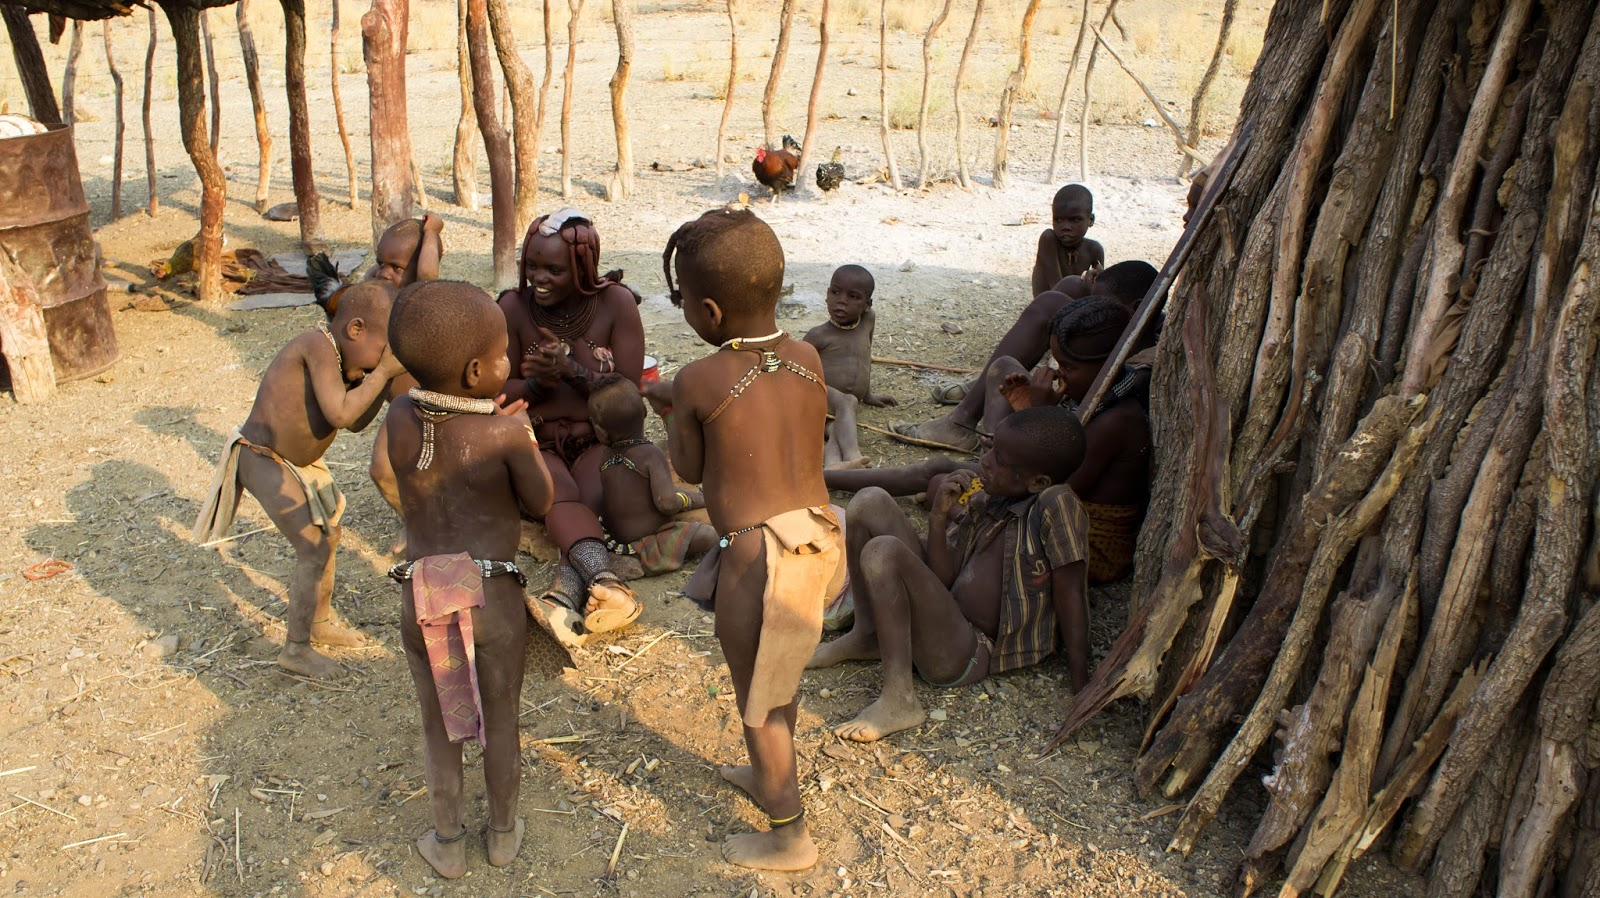 himba clan of namibia In the desert of namibia's remote kunene region live the himba, a fascinating,  semi-nomadic people whose way of life has remained virtually.